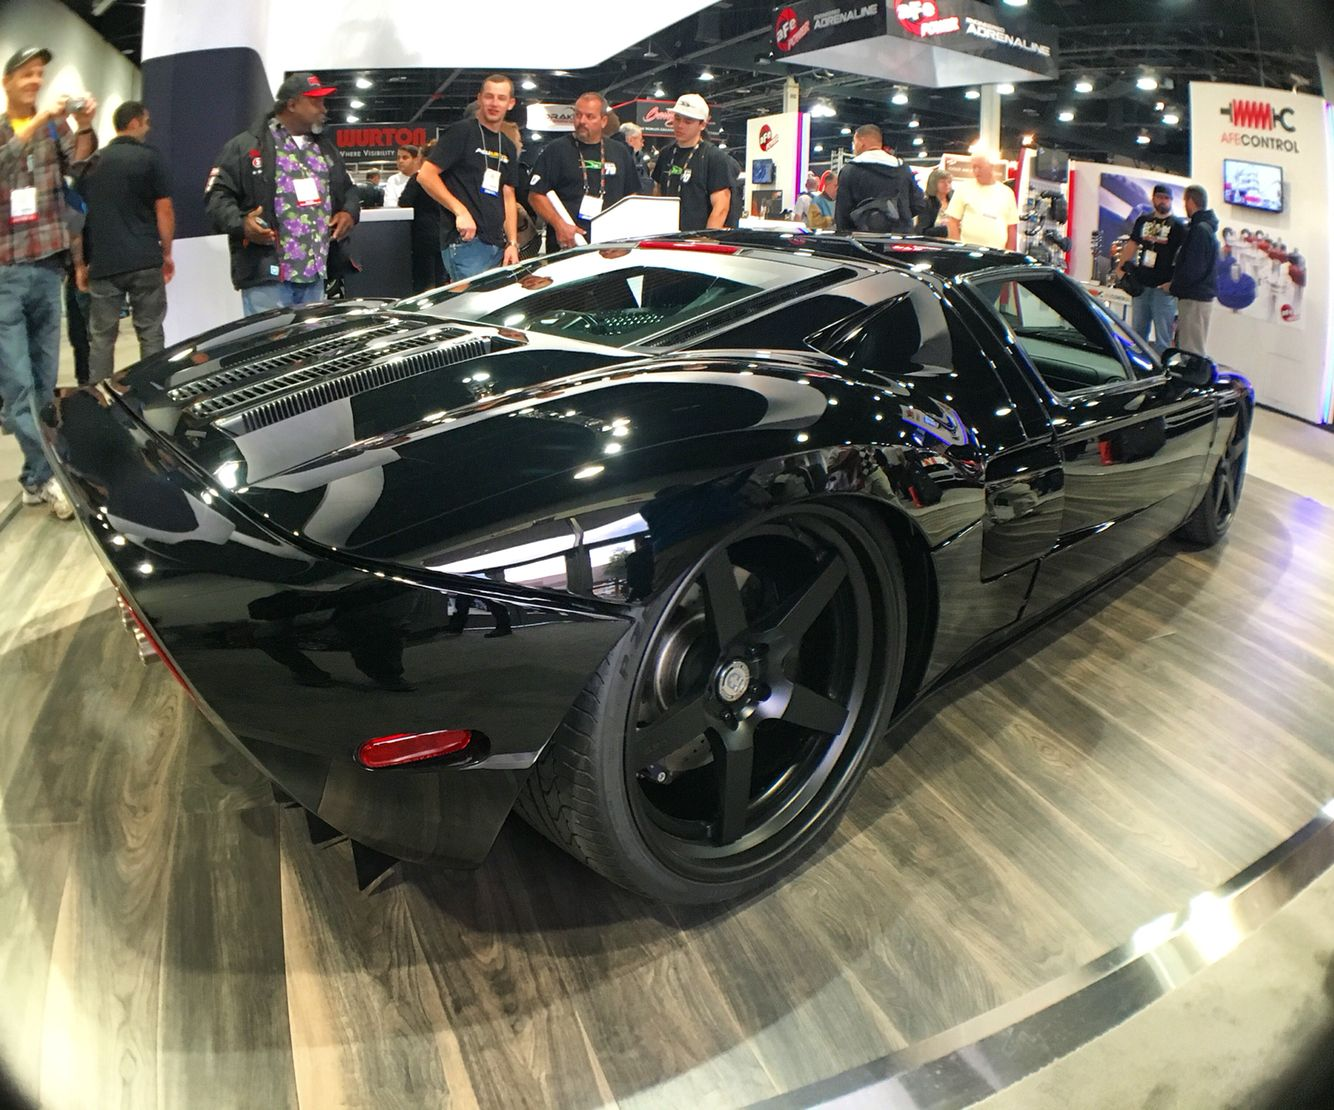 Ford GT looking sinister. #allblackeverything   www.squidc.am #squidcam #amazon #ford